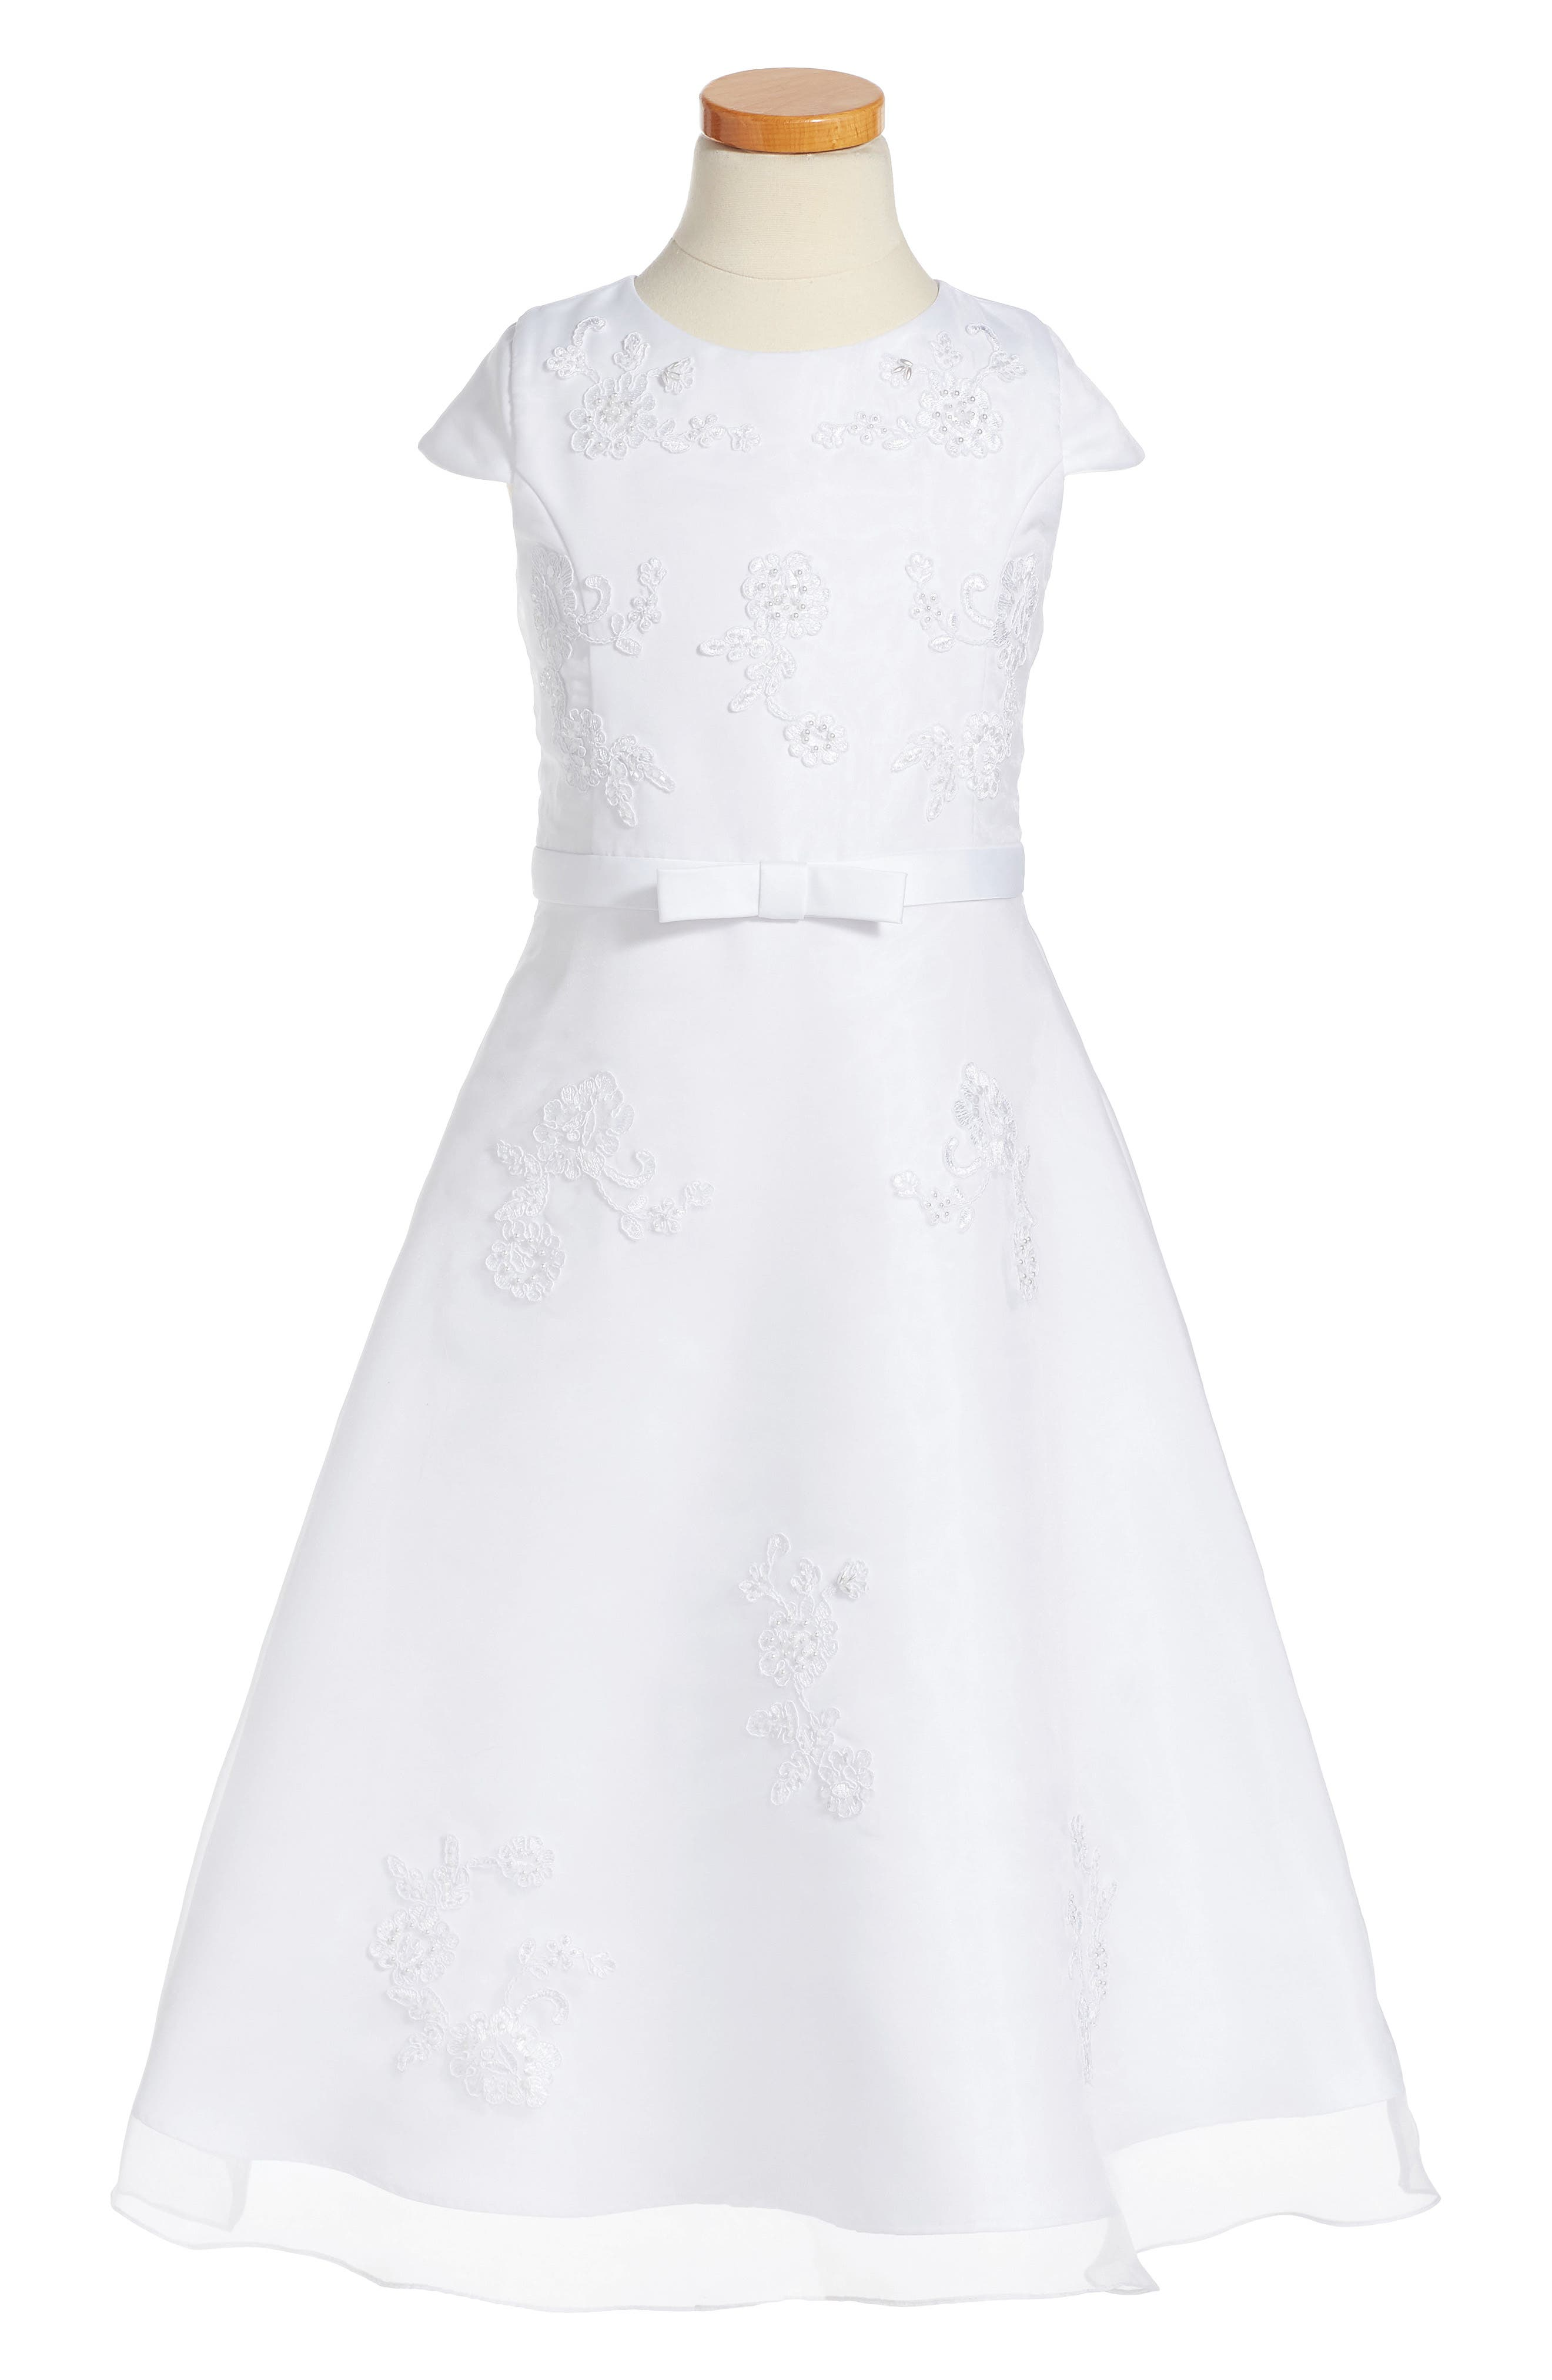 US ANGELS Lace Floral Fit & Flare Dress, Main, color, WHITE